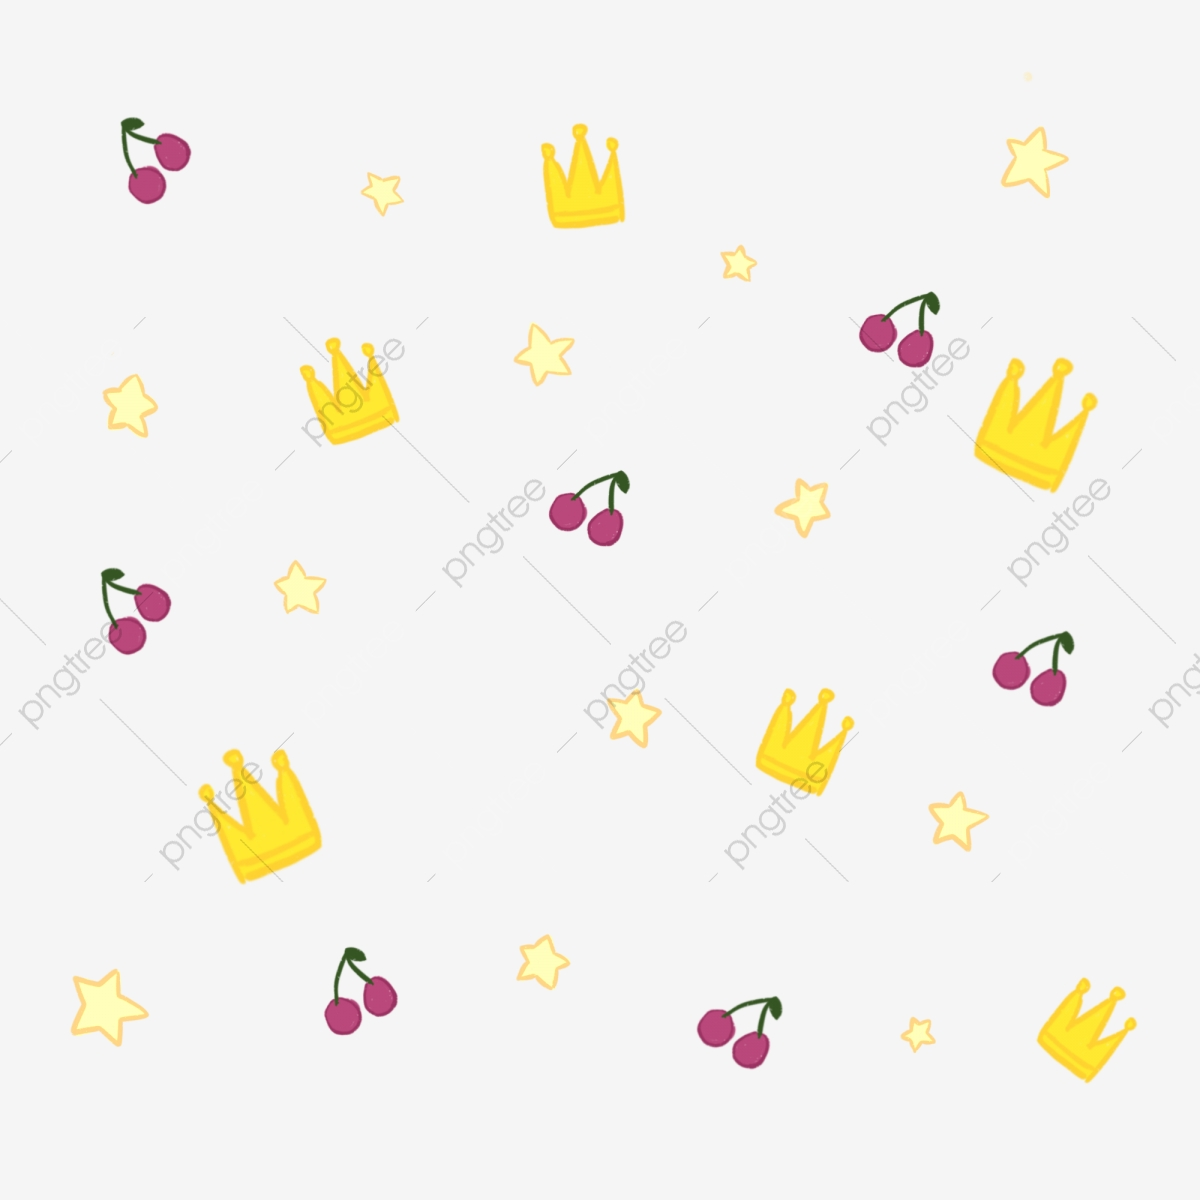 Cartoon Cute Star Crown Decoration Available For Commercial Use Float Prospect Hand Painted Png Transparent Clipart Image And Psd File For Free Download 4,000+ vectors, stock photos & psd files. pngtree